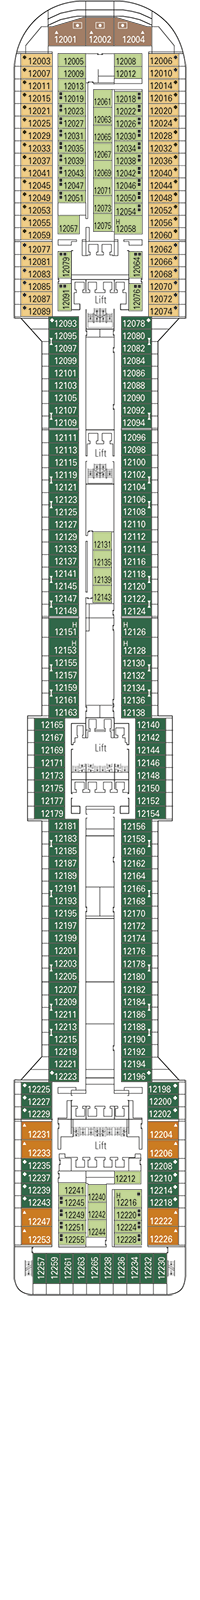 Incanto Deck Plan